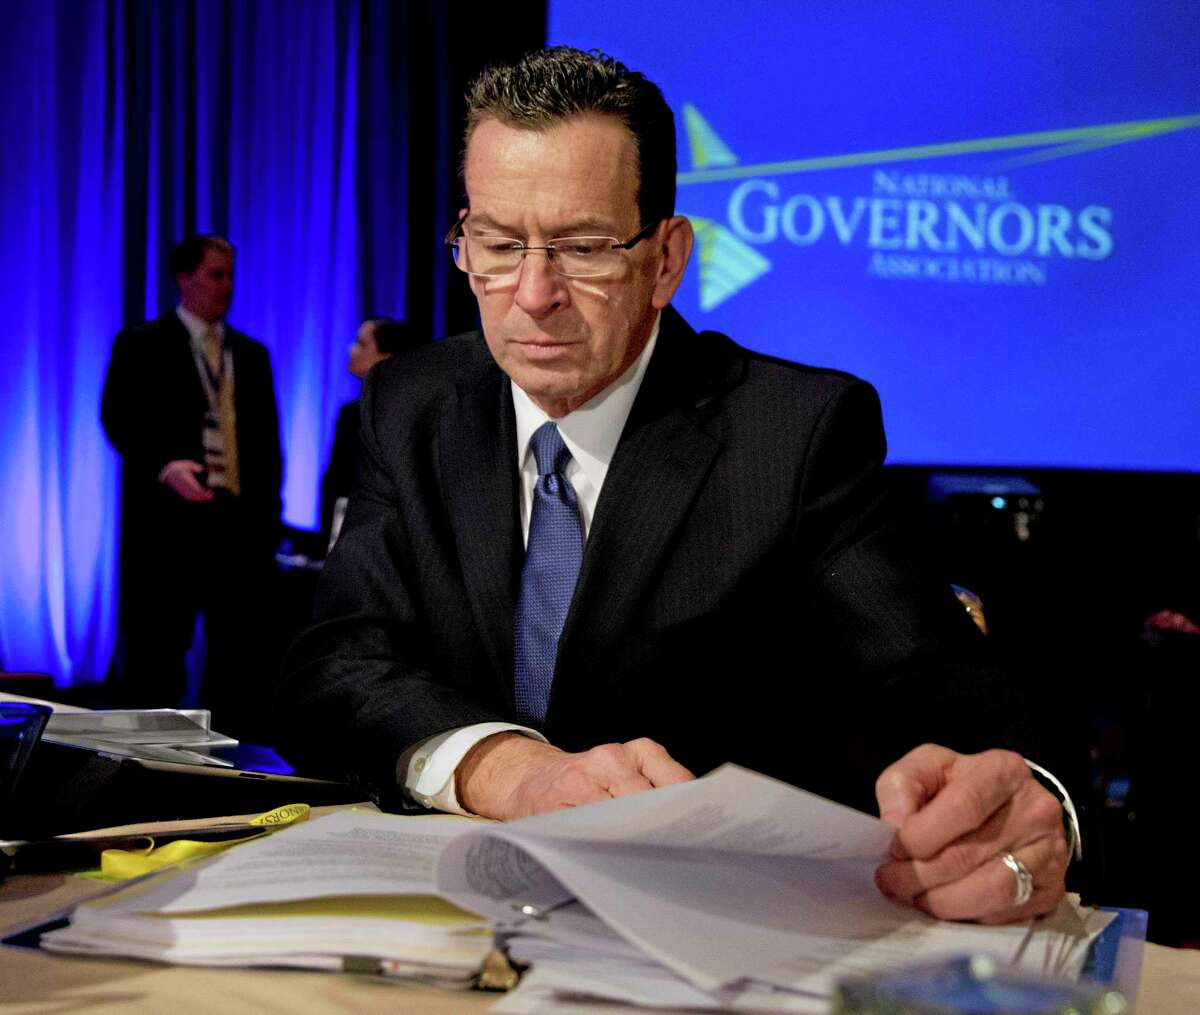 Connecticut Gov. Dannel P. Malloy reads documents during the National Governors Association 2013 Winter Meeting in Washington on Feb. 23, 2013.